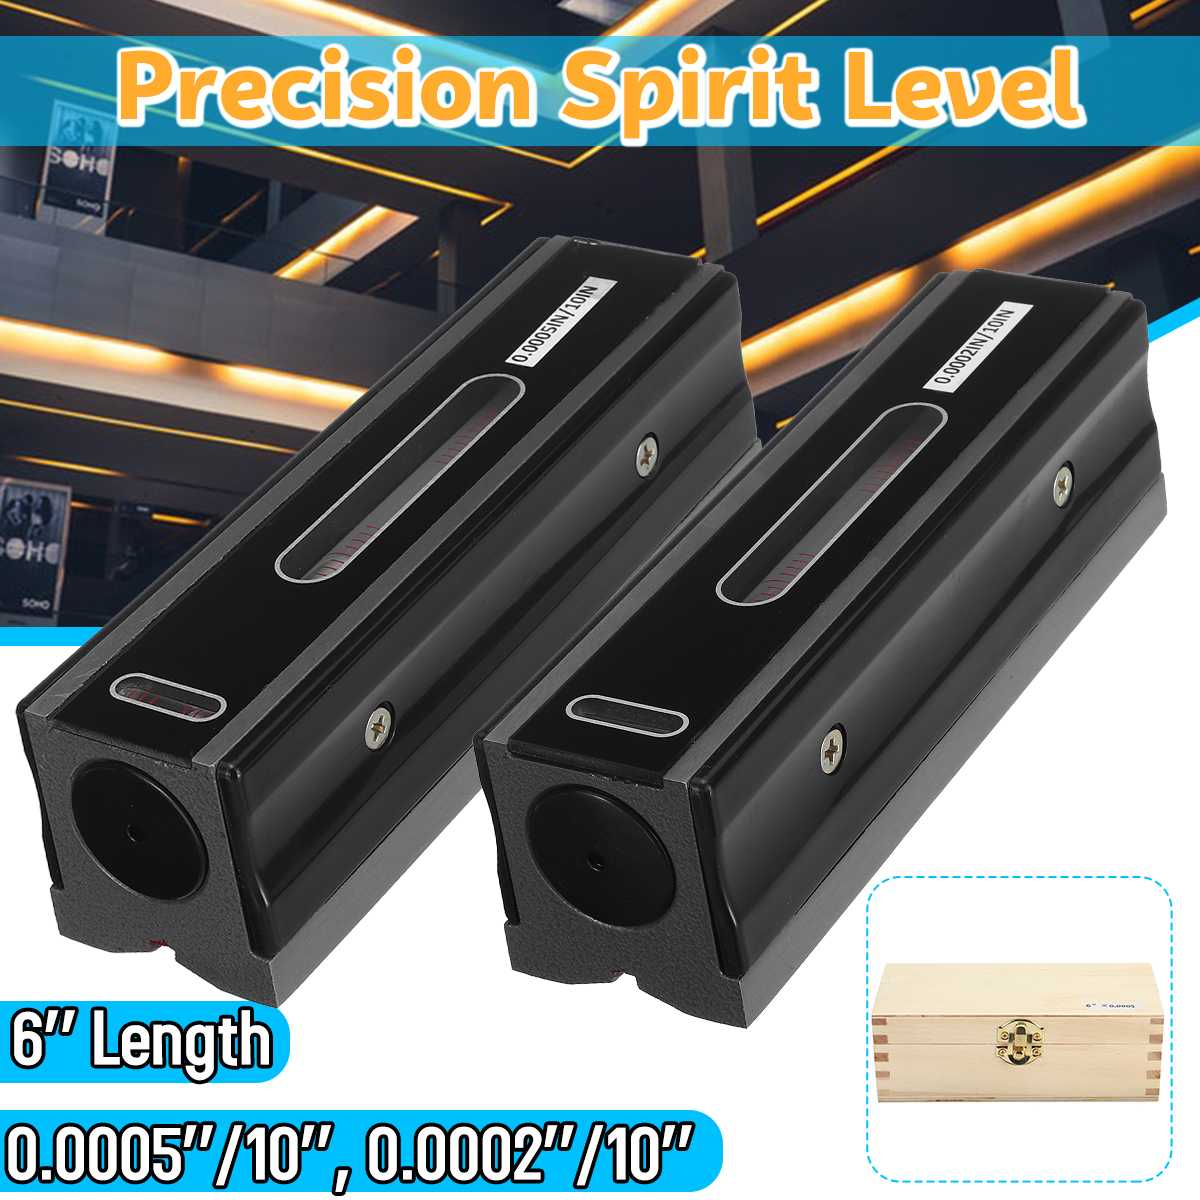 0.0005/.0002 Master Precisionn Level Graduation Bar Level 6 152mm Measurement Leveler Horizontal Machine Bearing Ruler Lever0.0005/.0002 Master Precisionn Level Graduation Bar Level 6 152mm Measurement Leveler Horizontal Machine Bearing Ruler Lever